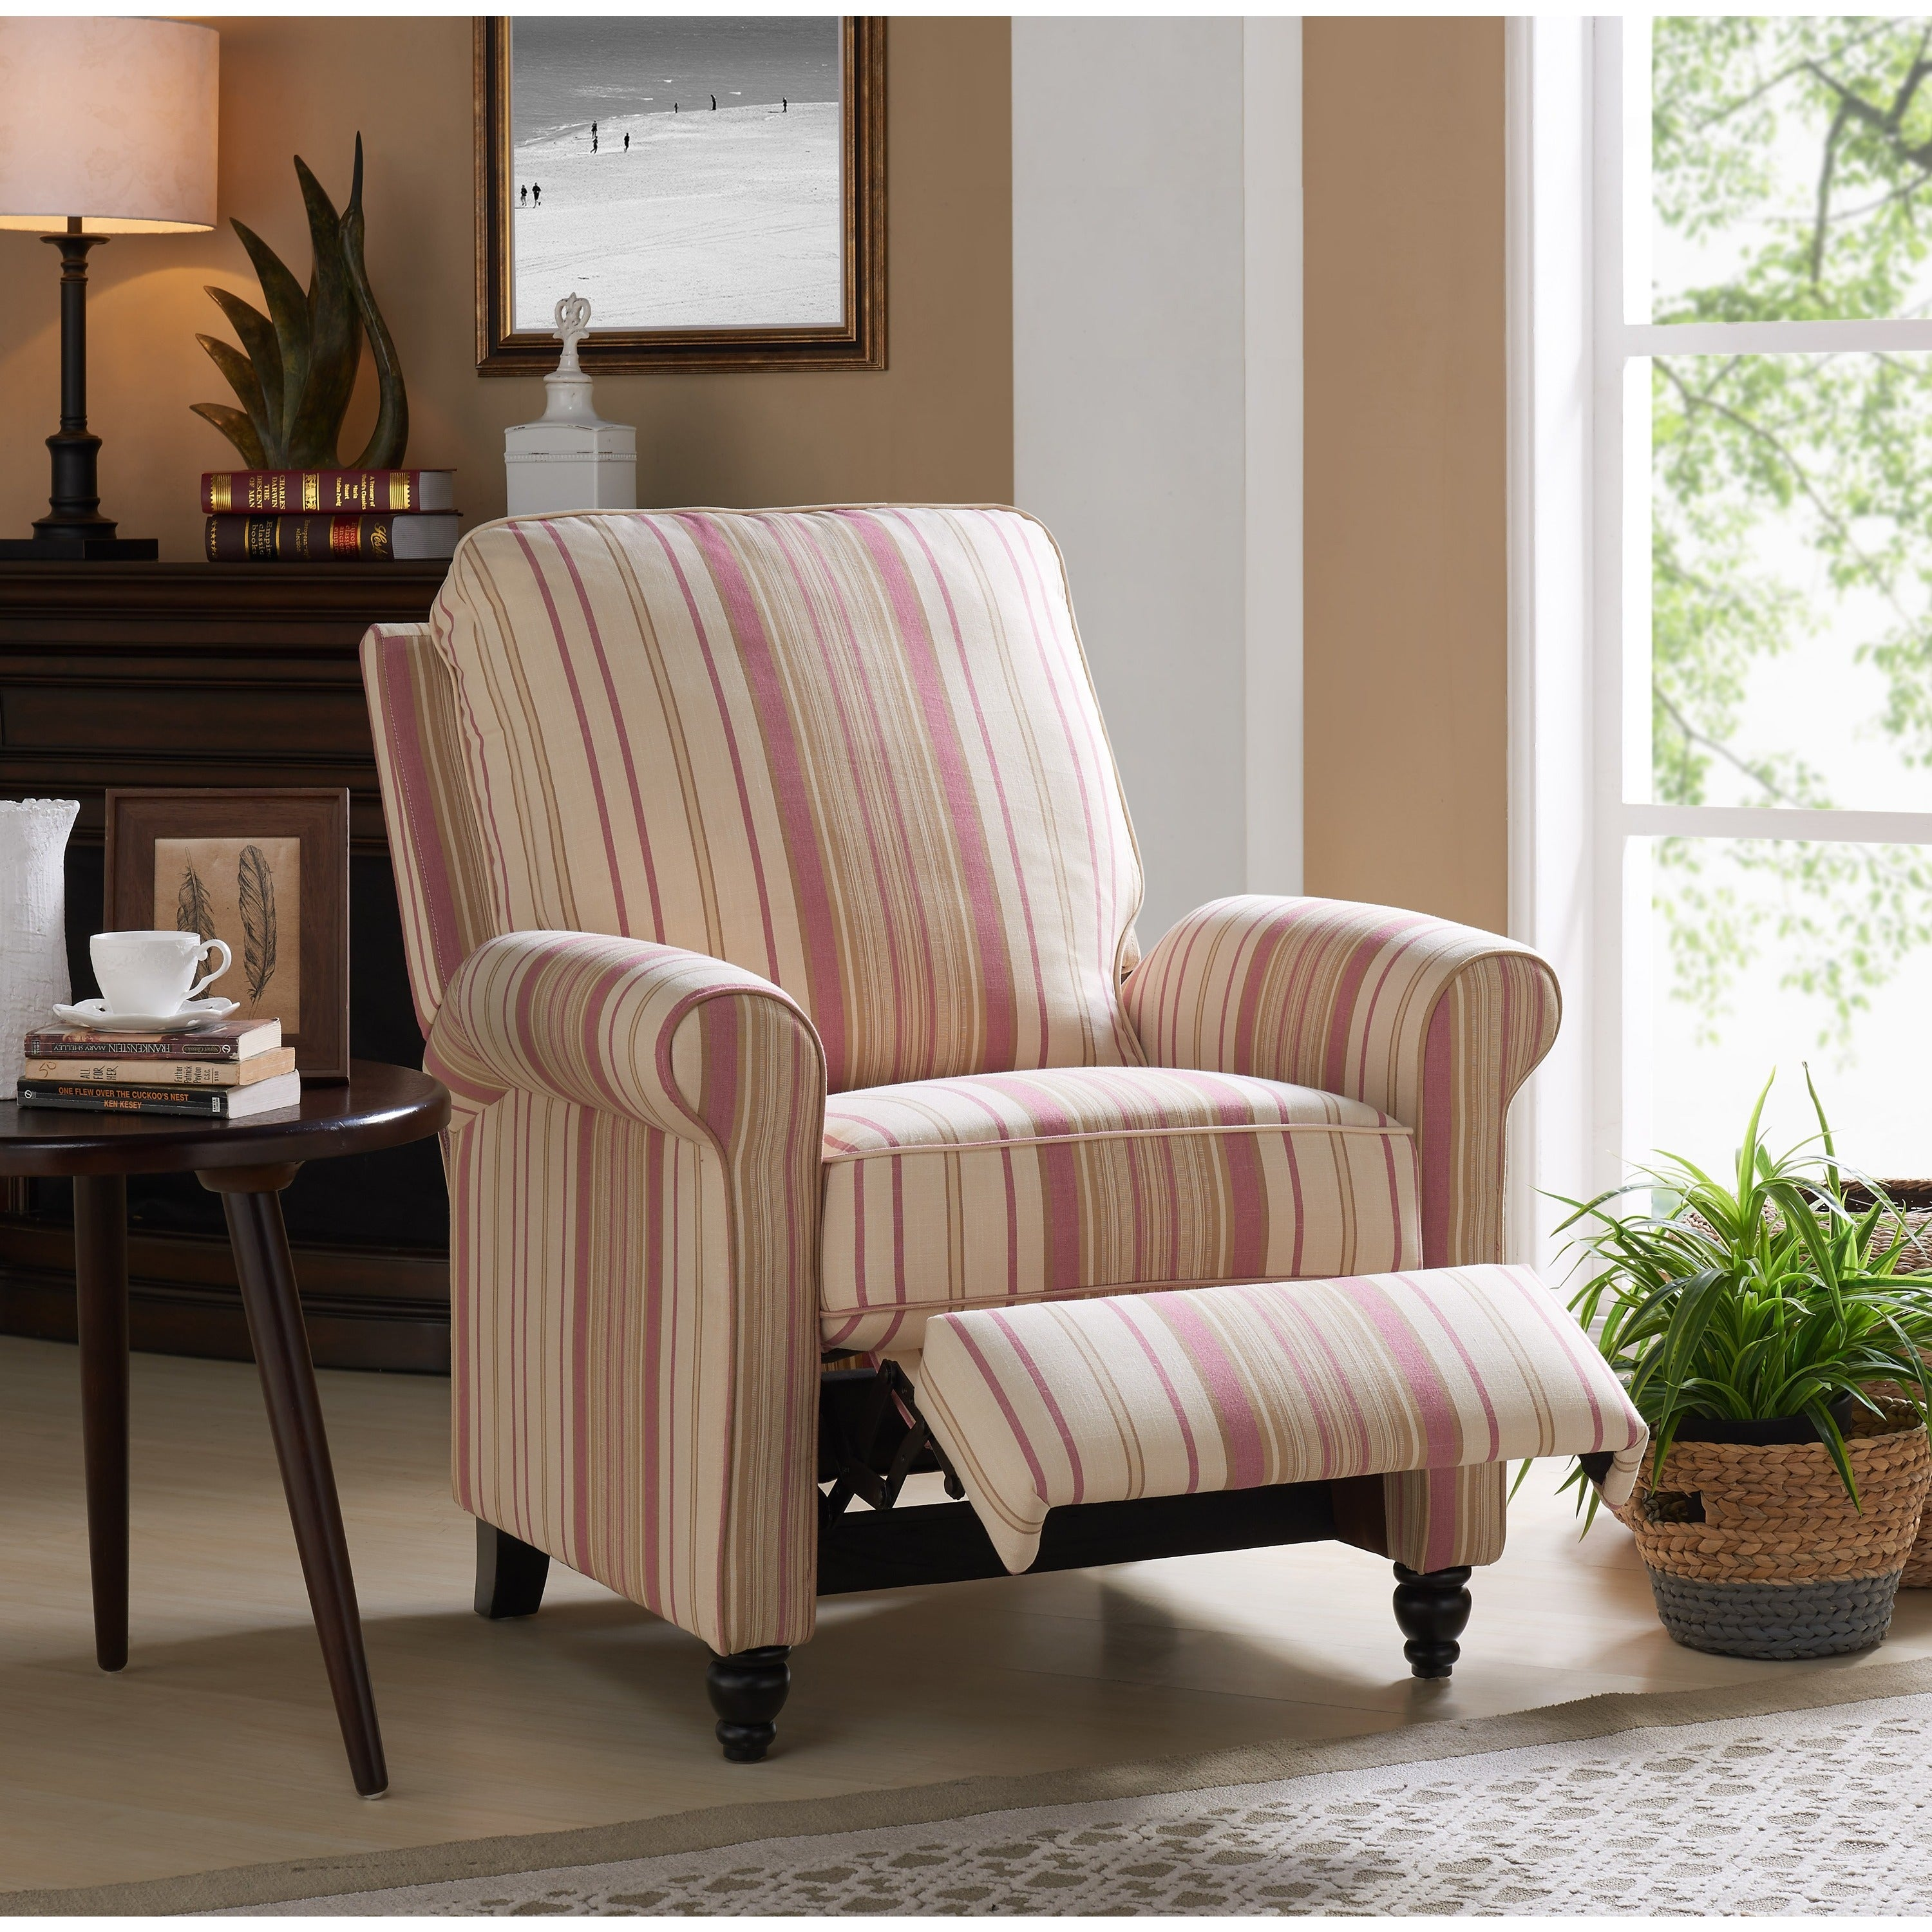 Seating Mini Gravita Armchair In Oriental Garden Fabric: Shop ProLounger Pink Stripe Push Back Recliner Chair